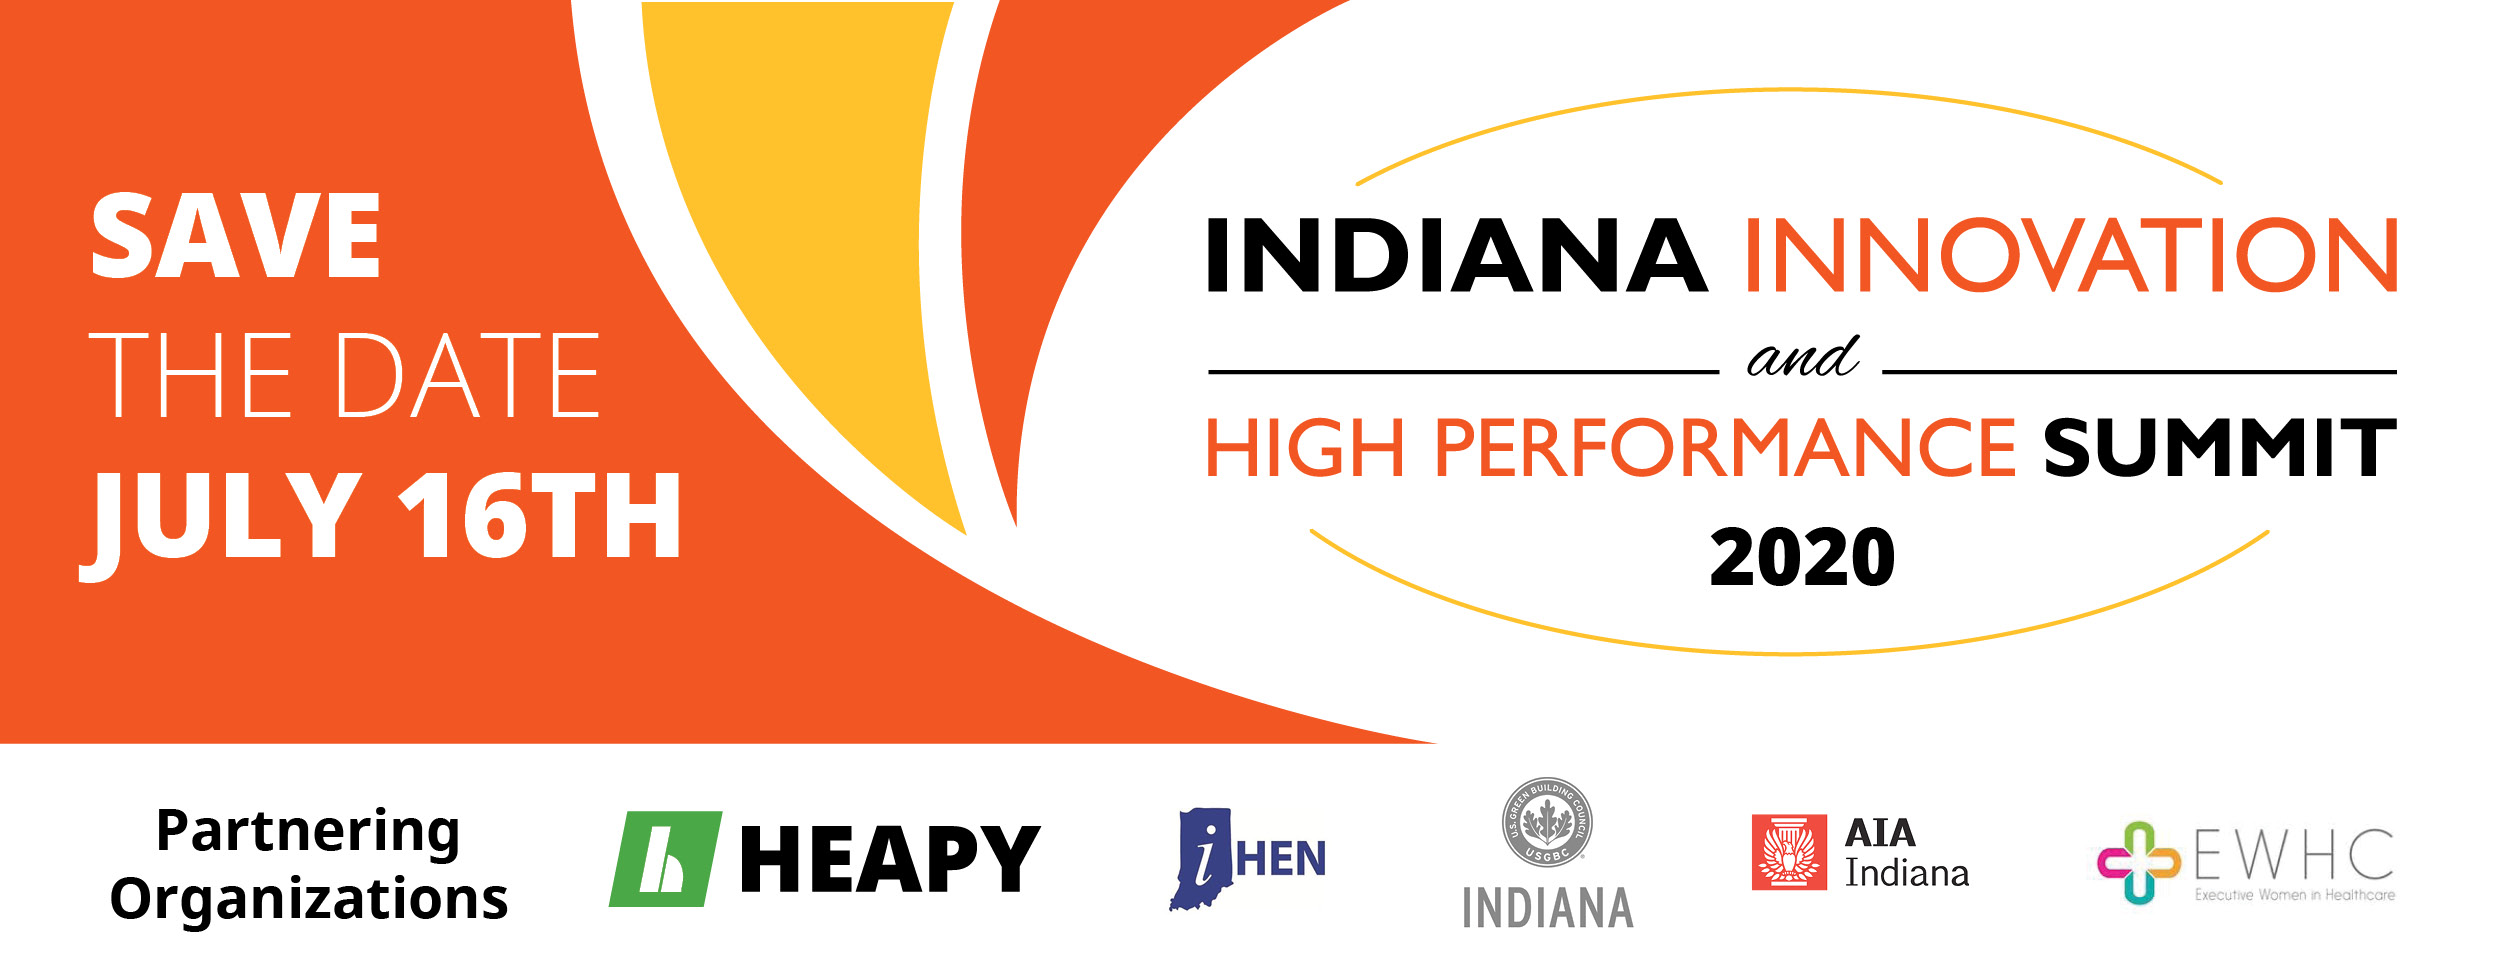 Indiana Innovation and High Performance Summit